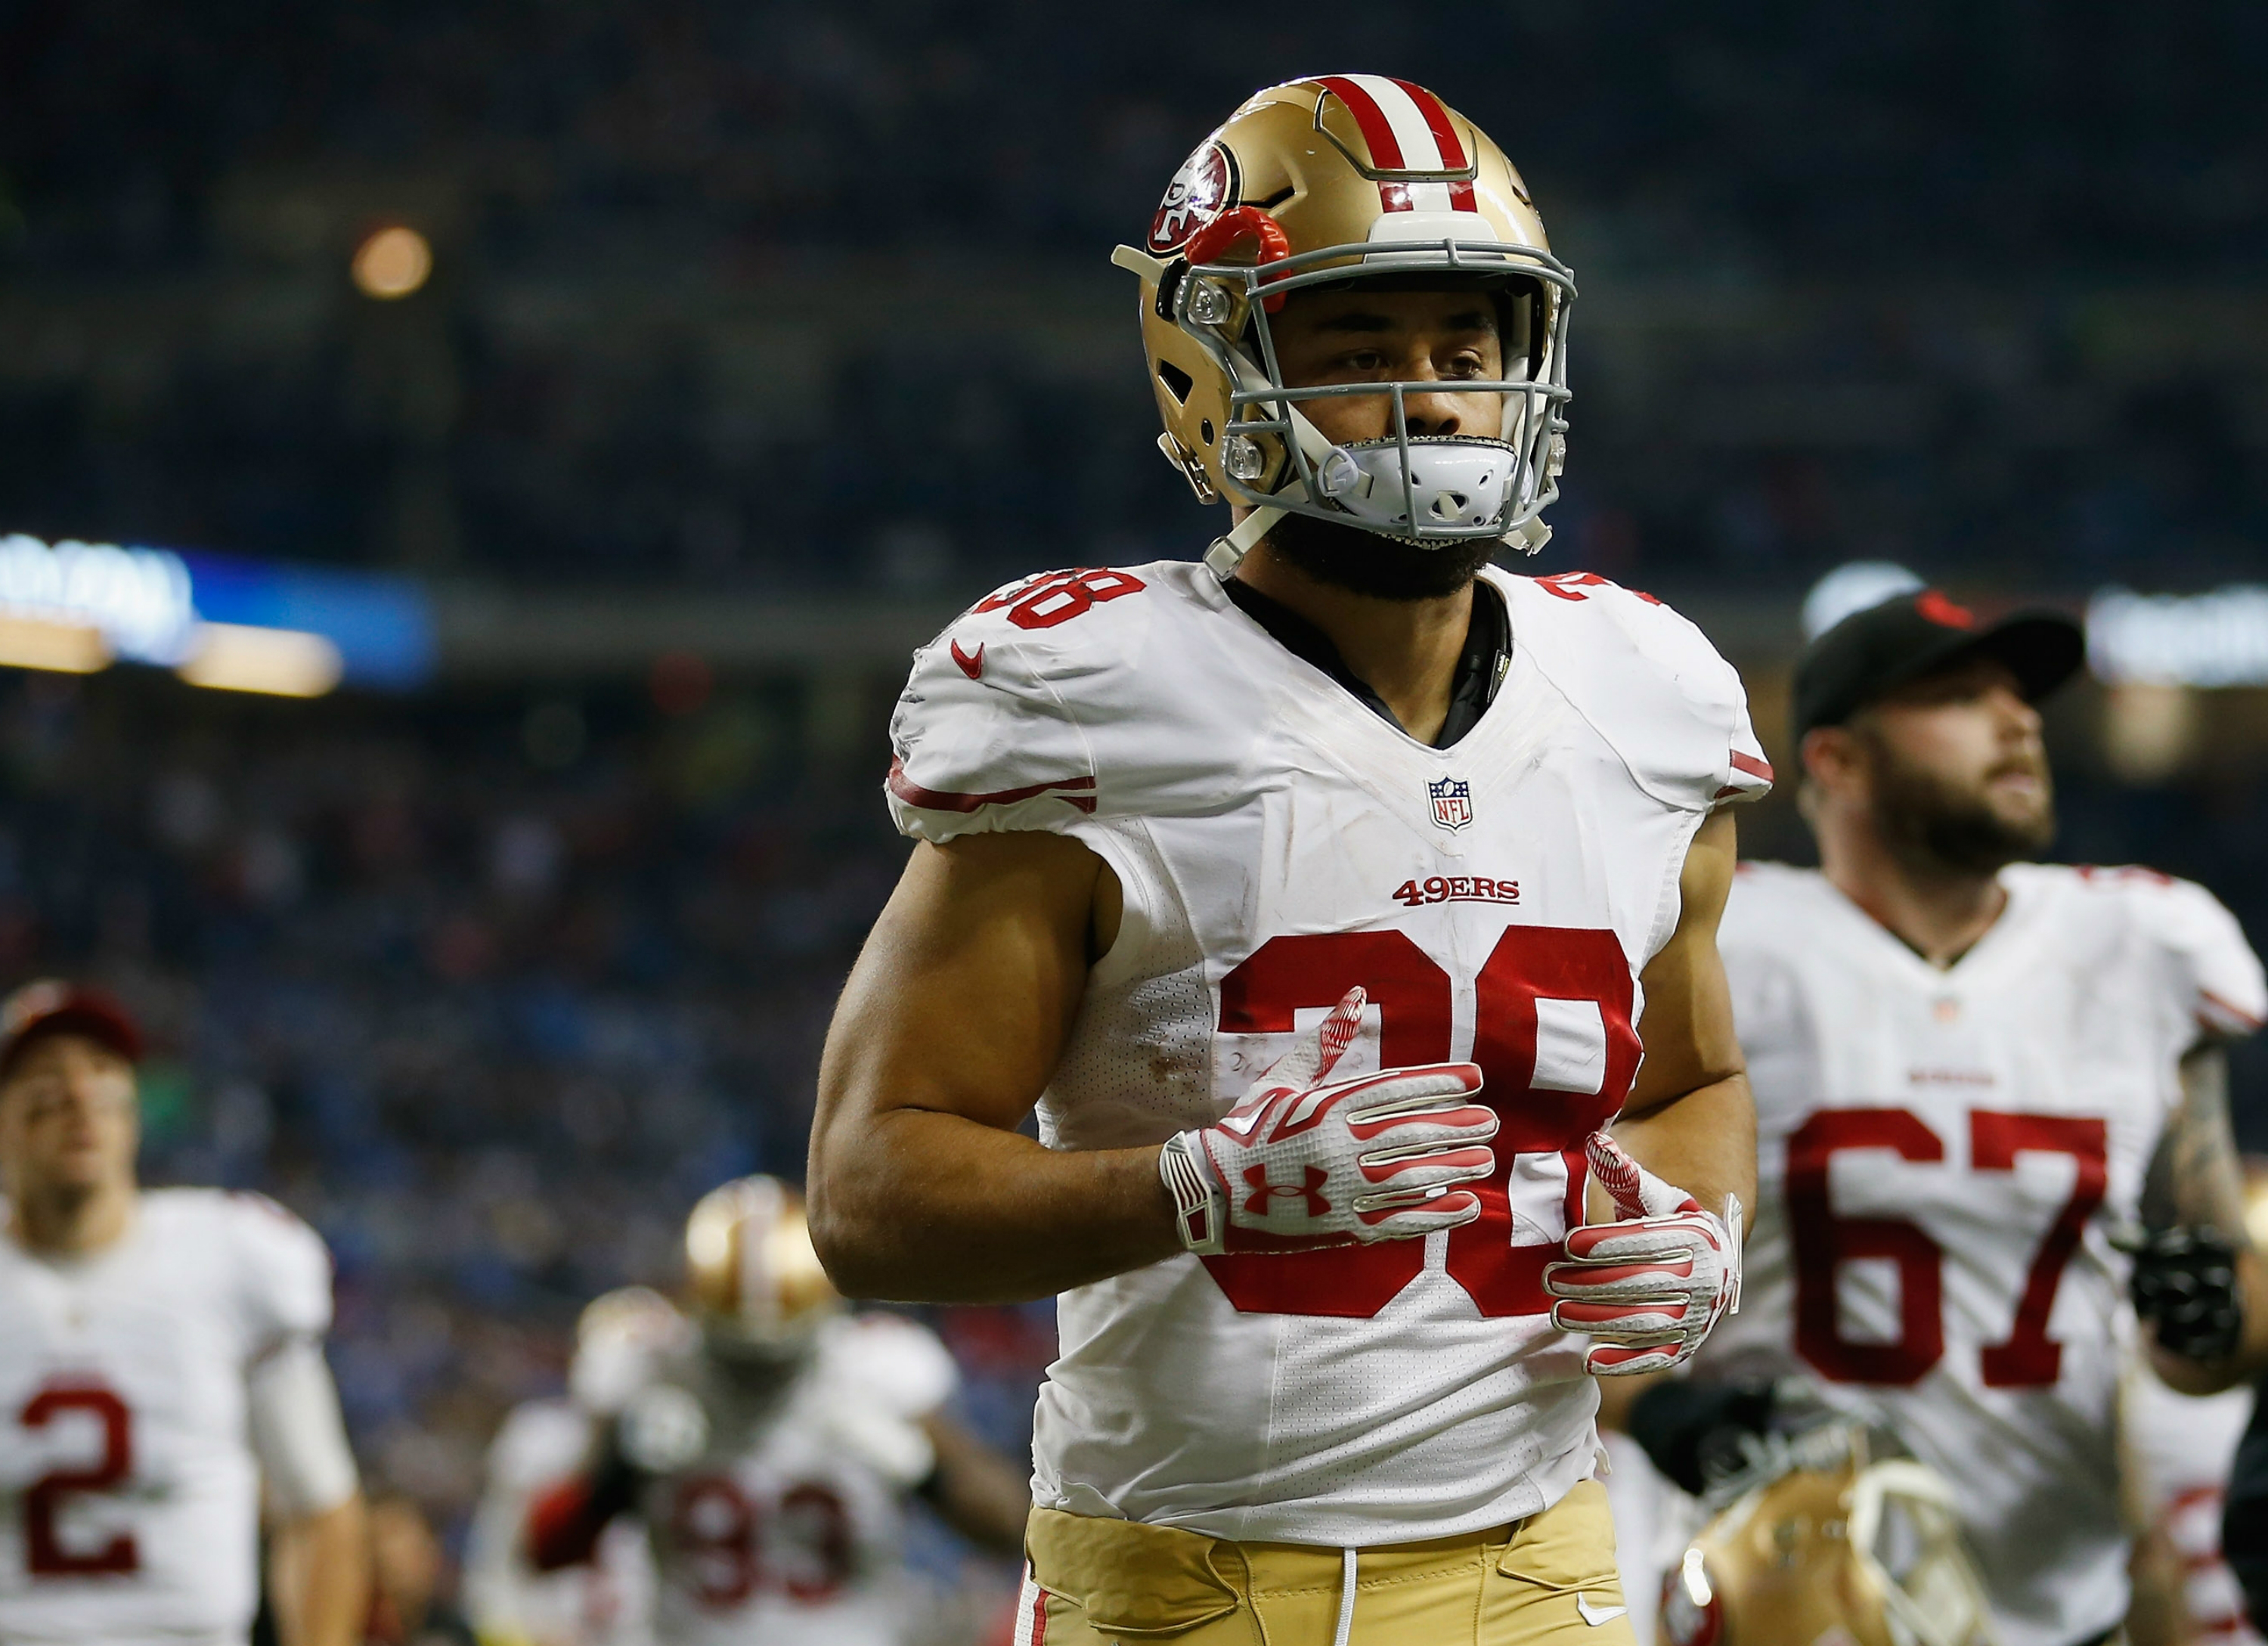 Jarryd Hayne denies accusations of rape in USA  during 49ers National Football League  stint